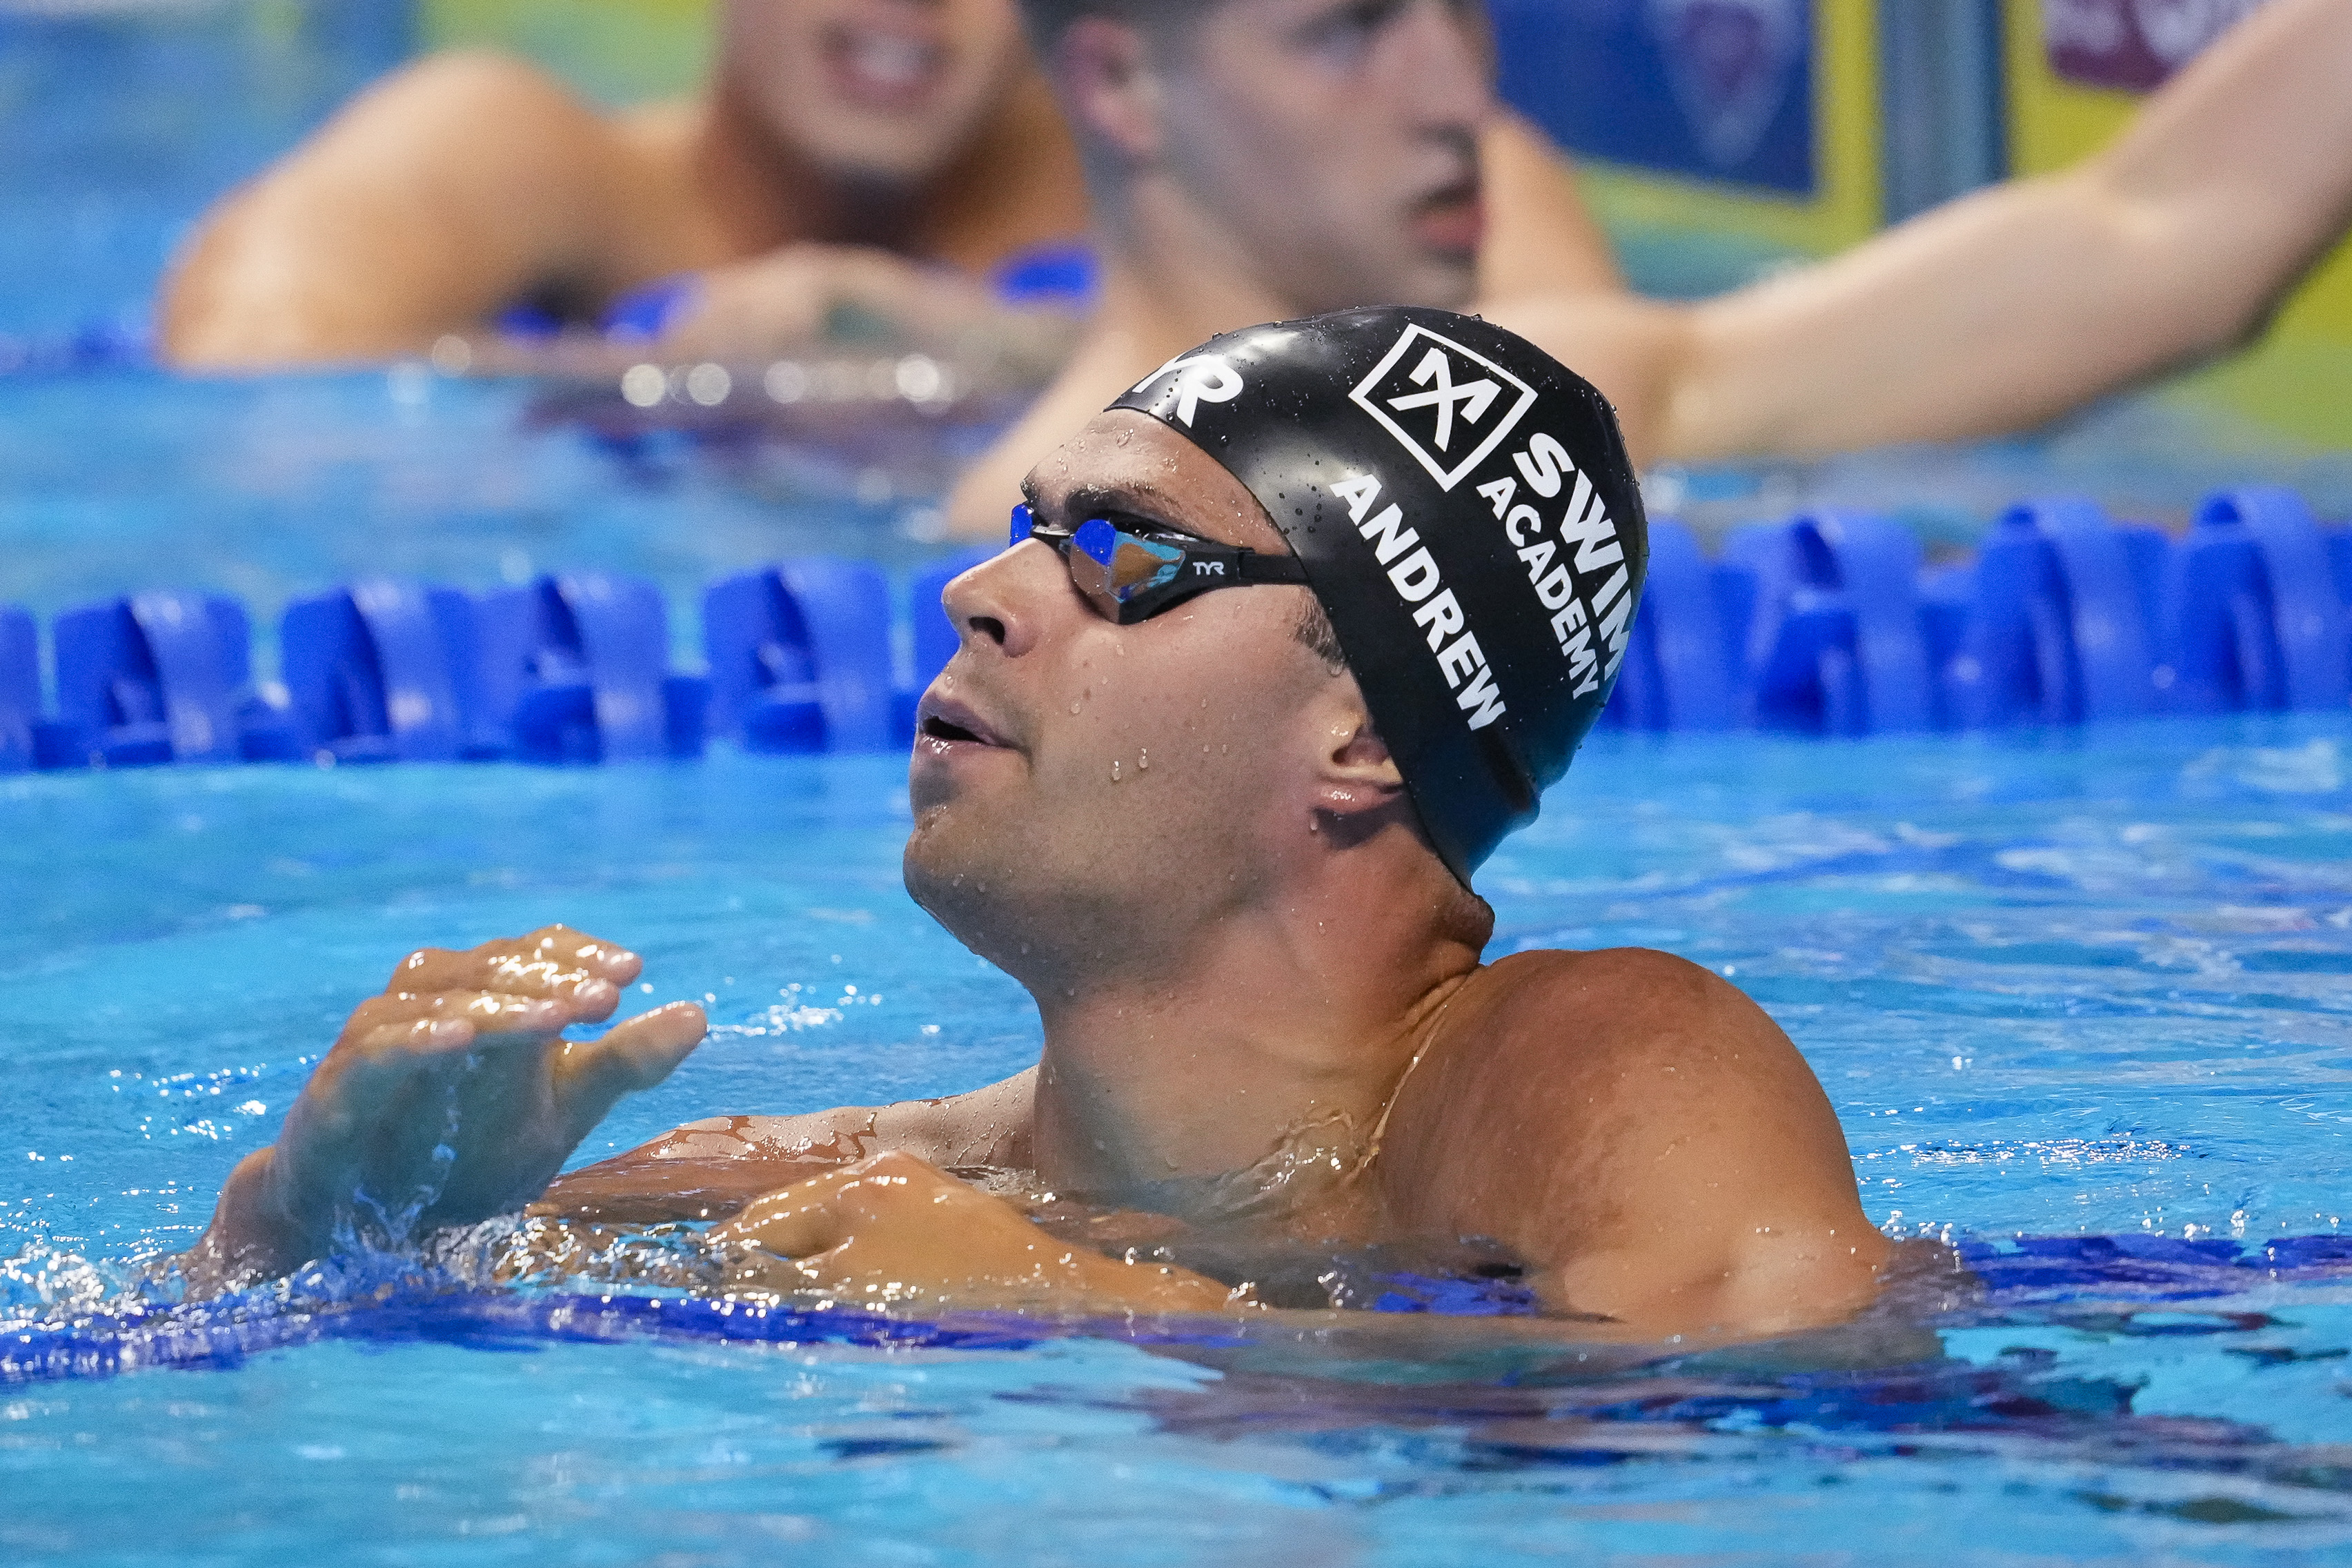 Jun 17, 2021; Omaha, Nebraska, USA; Michael Andrew reacts in the Men's 200m Individual Medley Semifinals 2 during the U.S. Olympic Team Trials Swimming competition at CHI Health Center Omaha. Mandatory Credit: Rob Schumacher-USA TODAY Sports